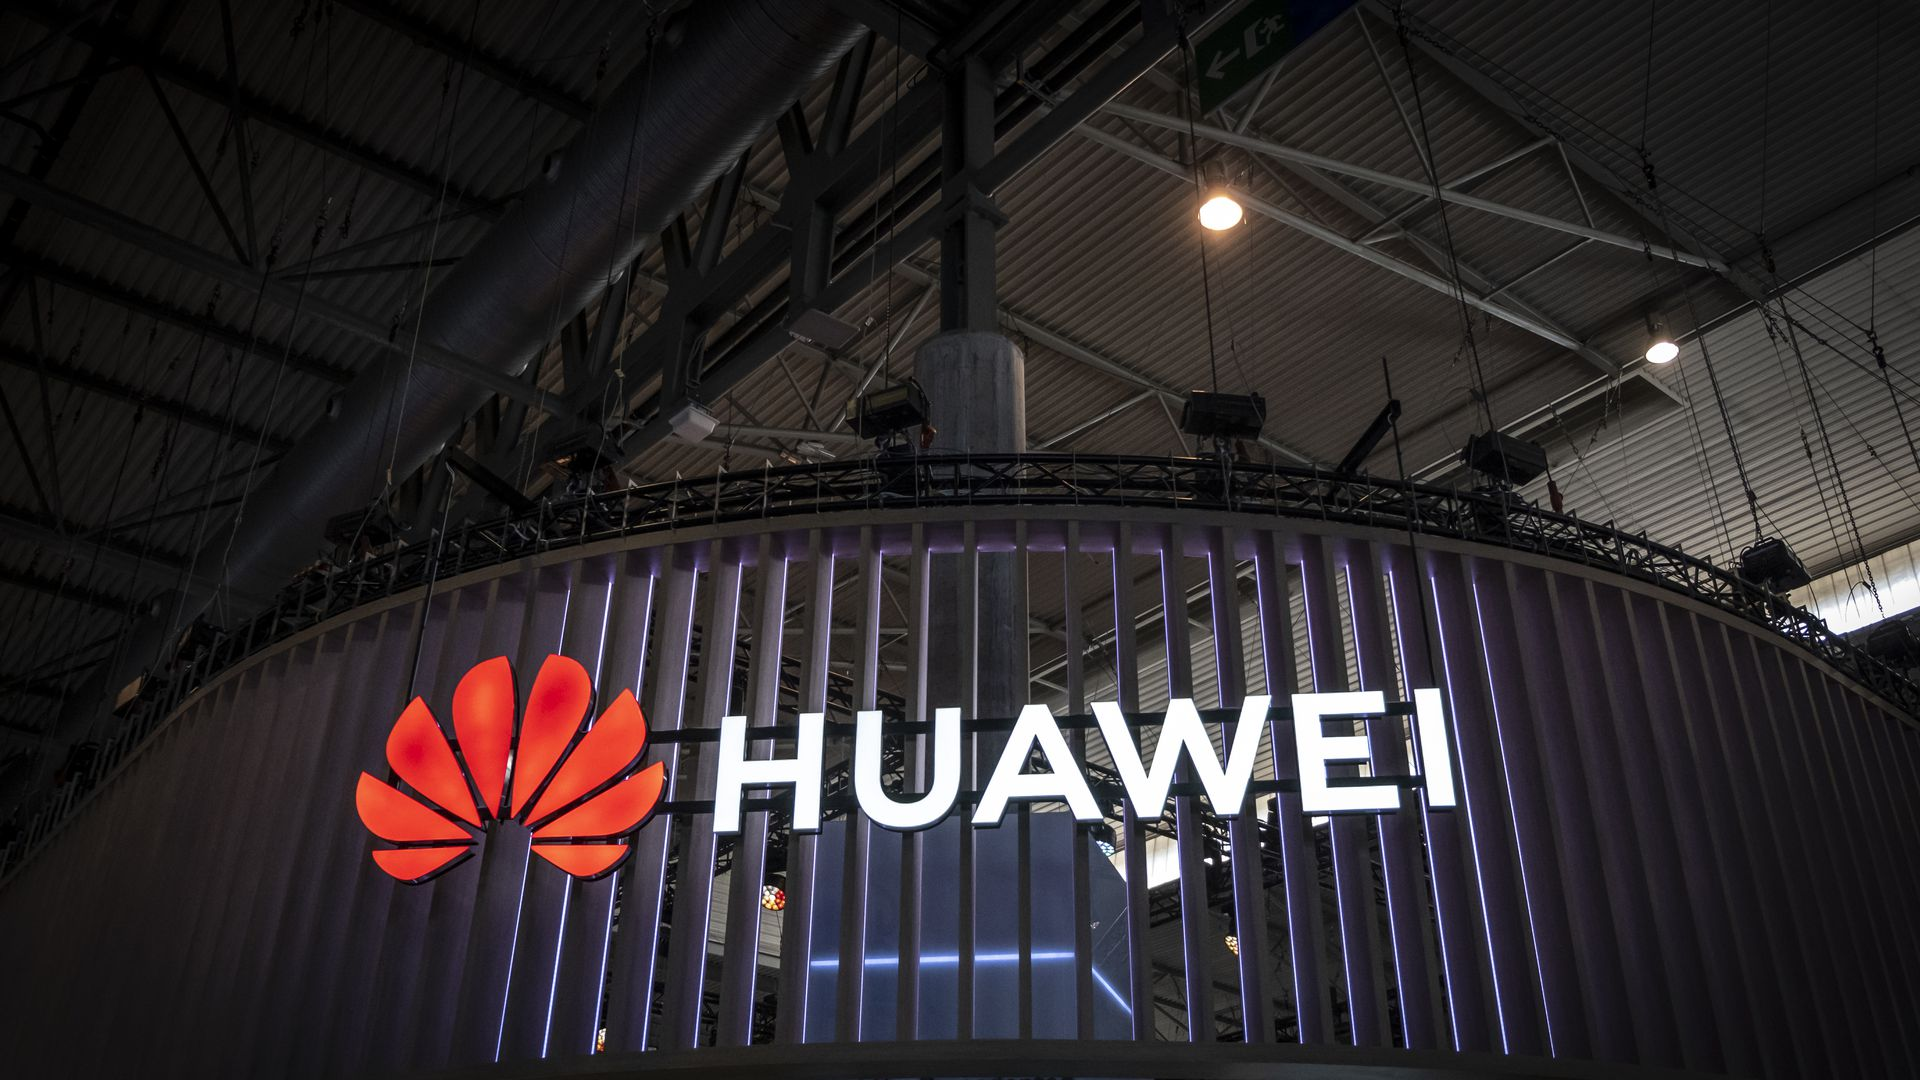 Huawei neon sign on a building